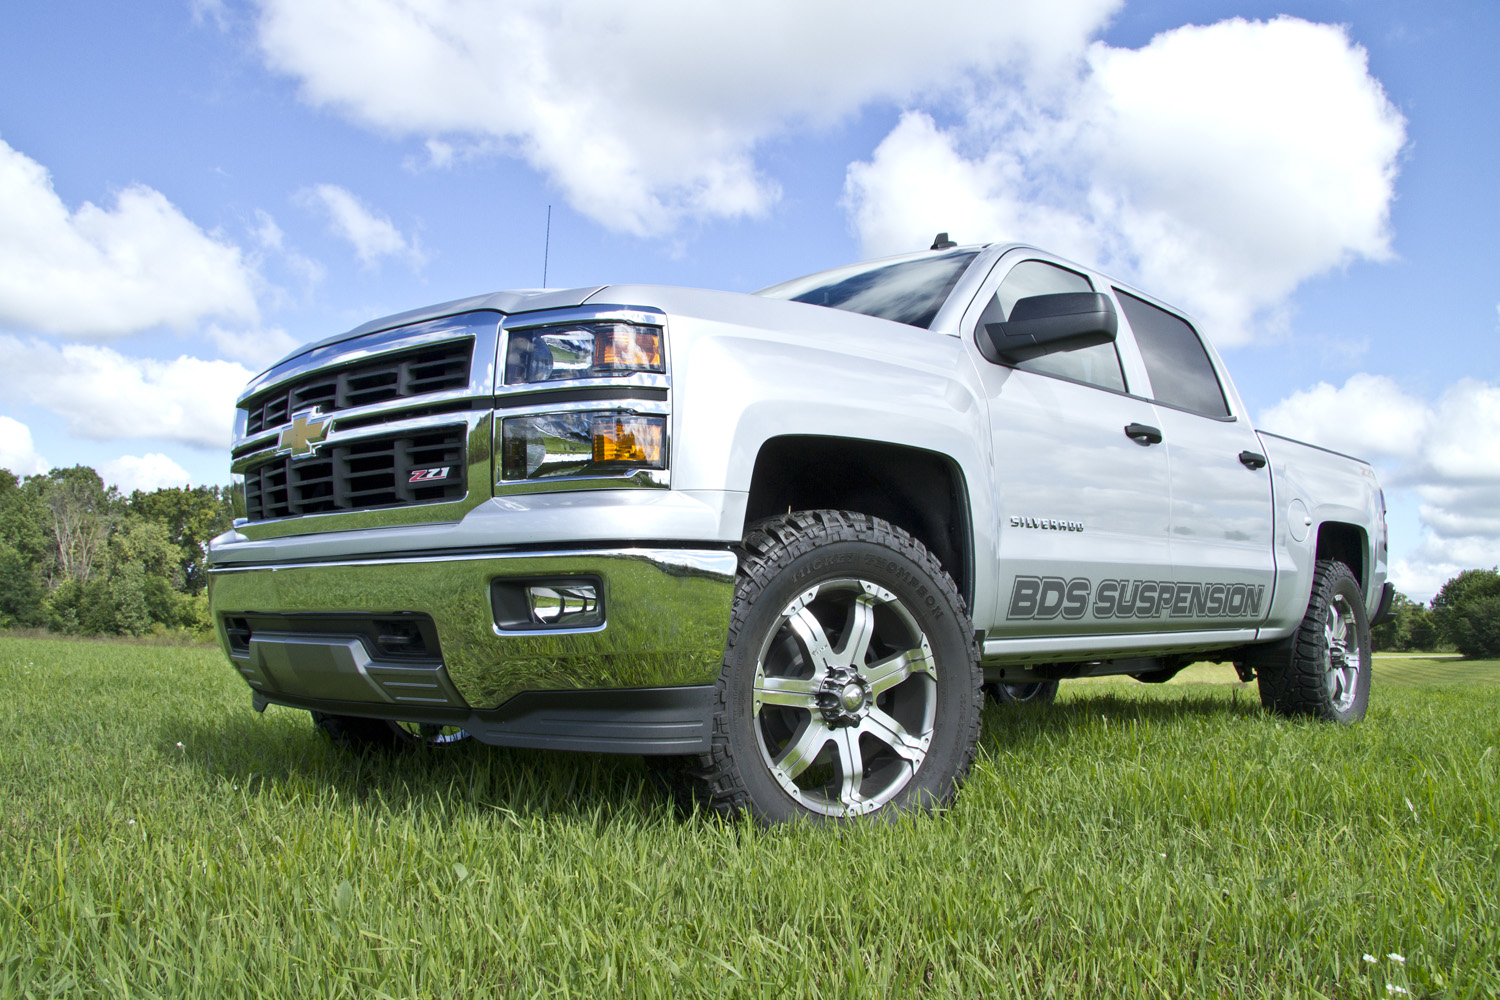 All Chevy chevy 1500 leveling kit : Press Release #145: 2014 Chevy/GMC 1500 Leveling Kit | BDS